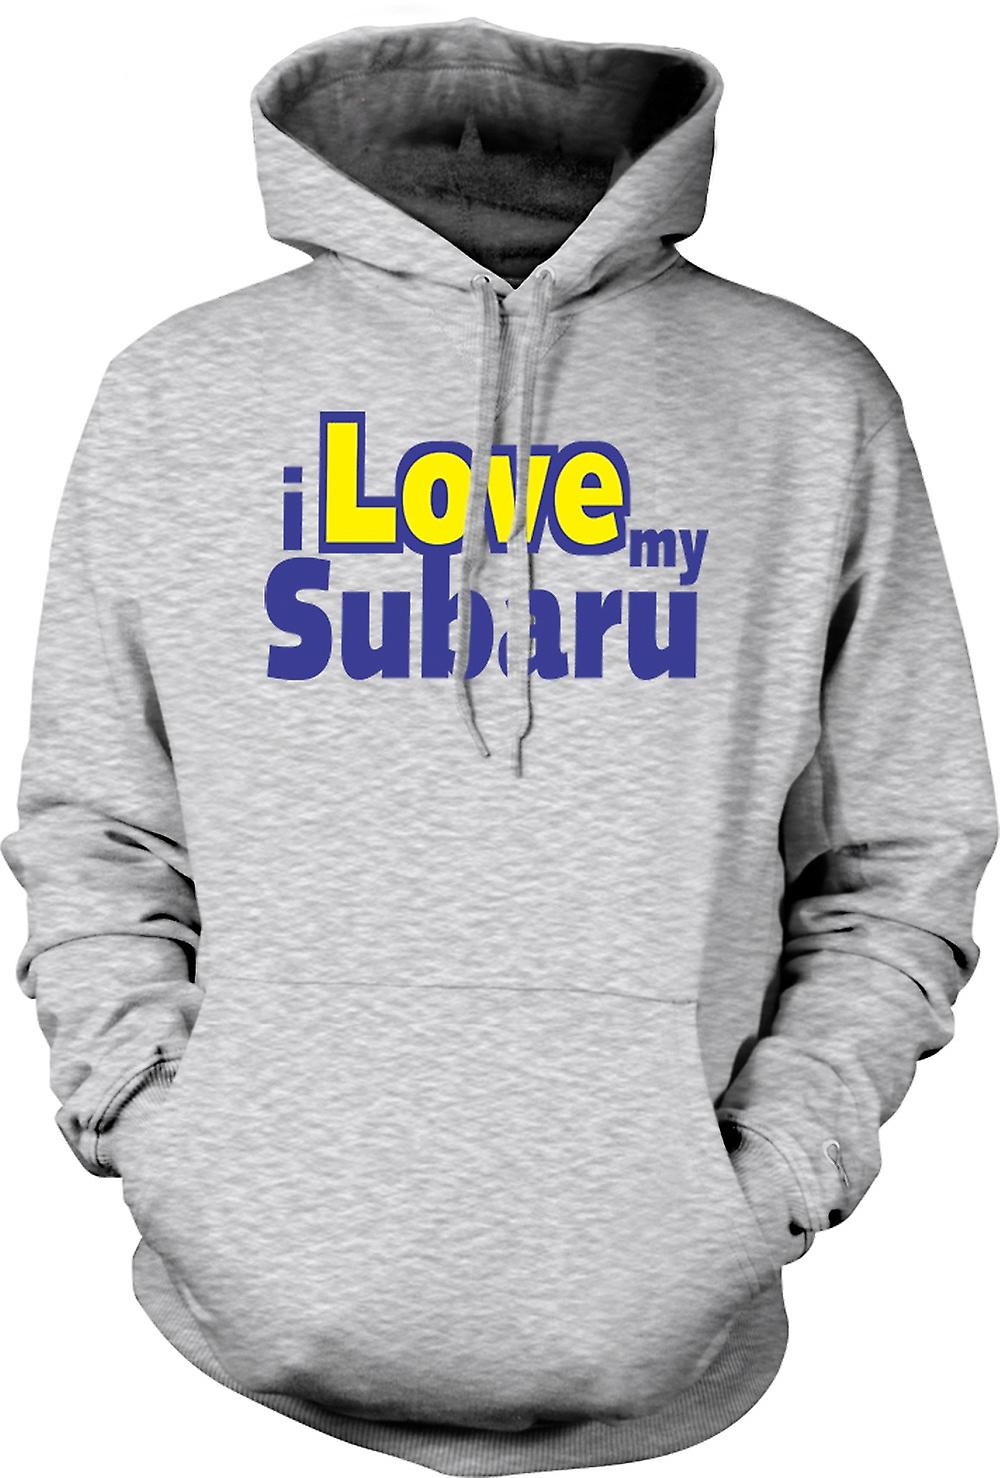 Mens Hoodie - I Love My Subaru - Car Enthusiast